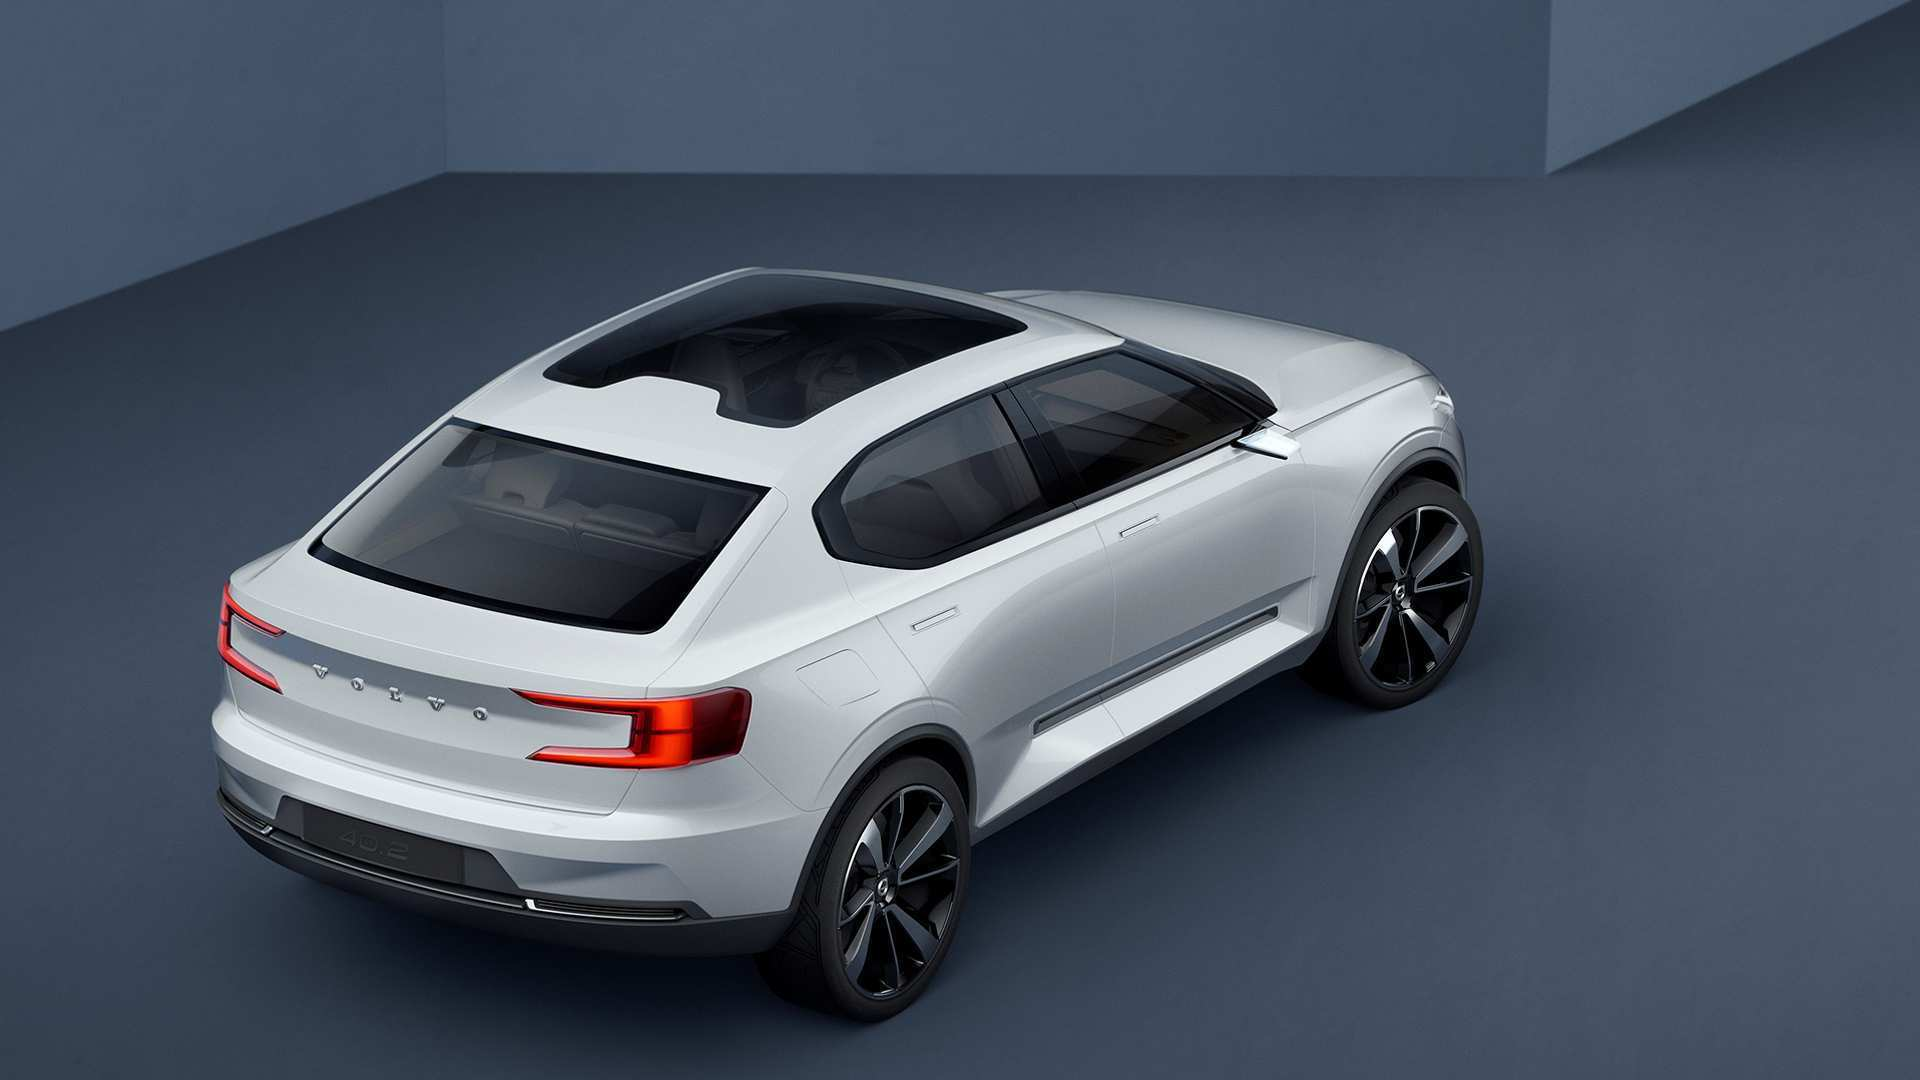 79 The Best Volvo 2019 Electric Car Spy Shoot